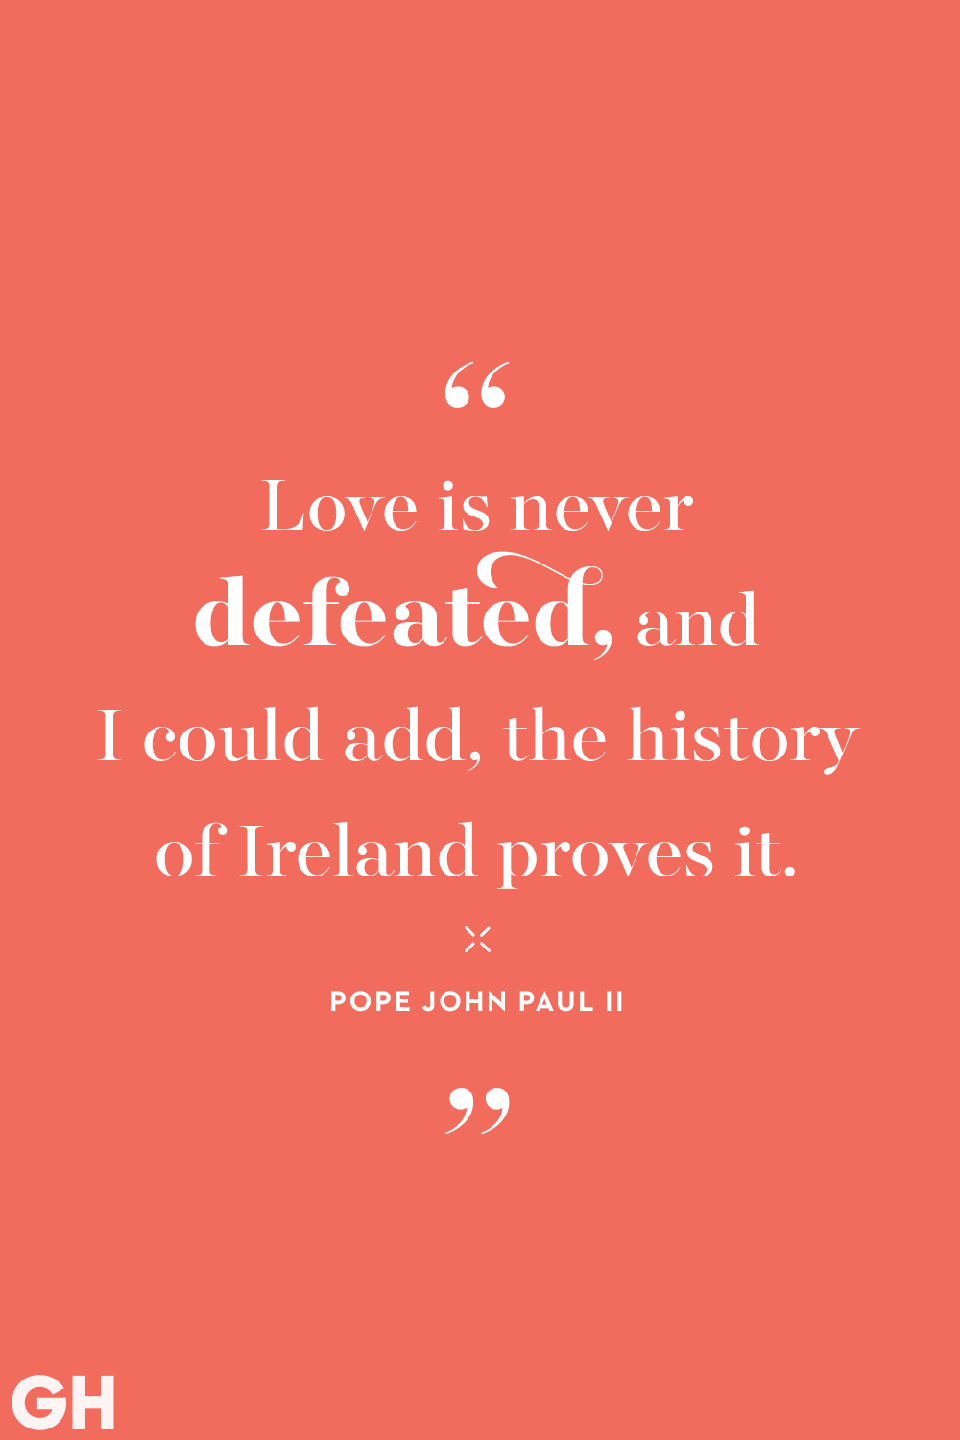 <p>Love is never defeated, and I could add, the history of Ireland proves it.</p>